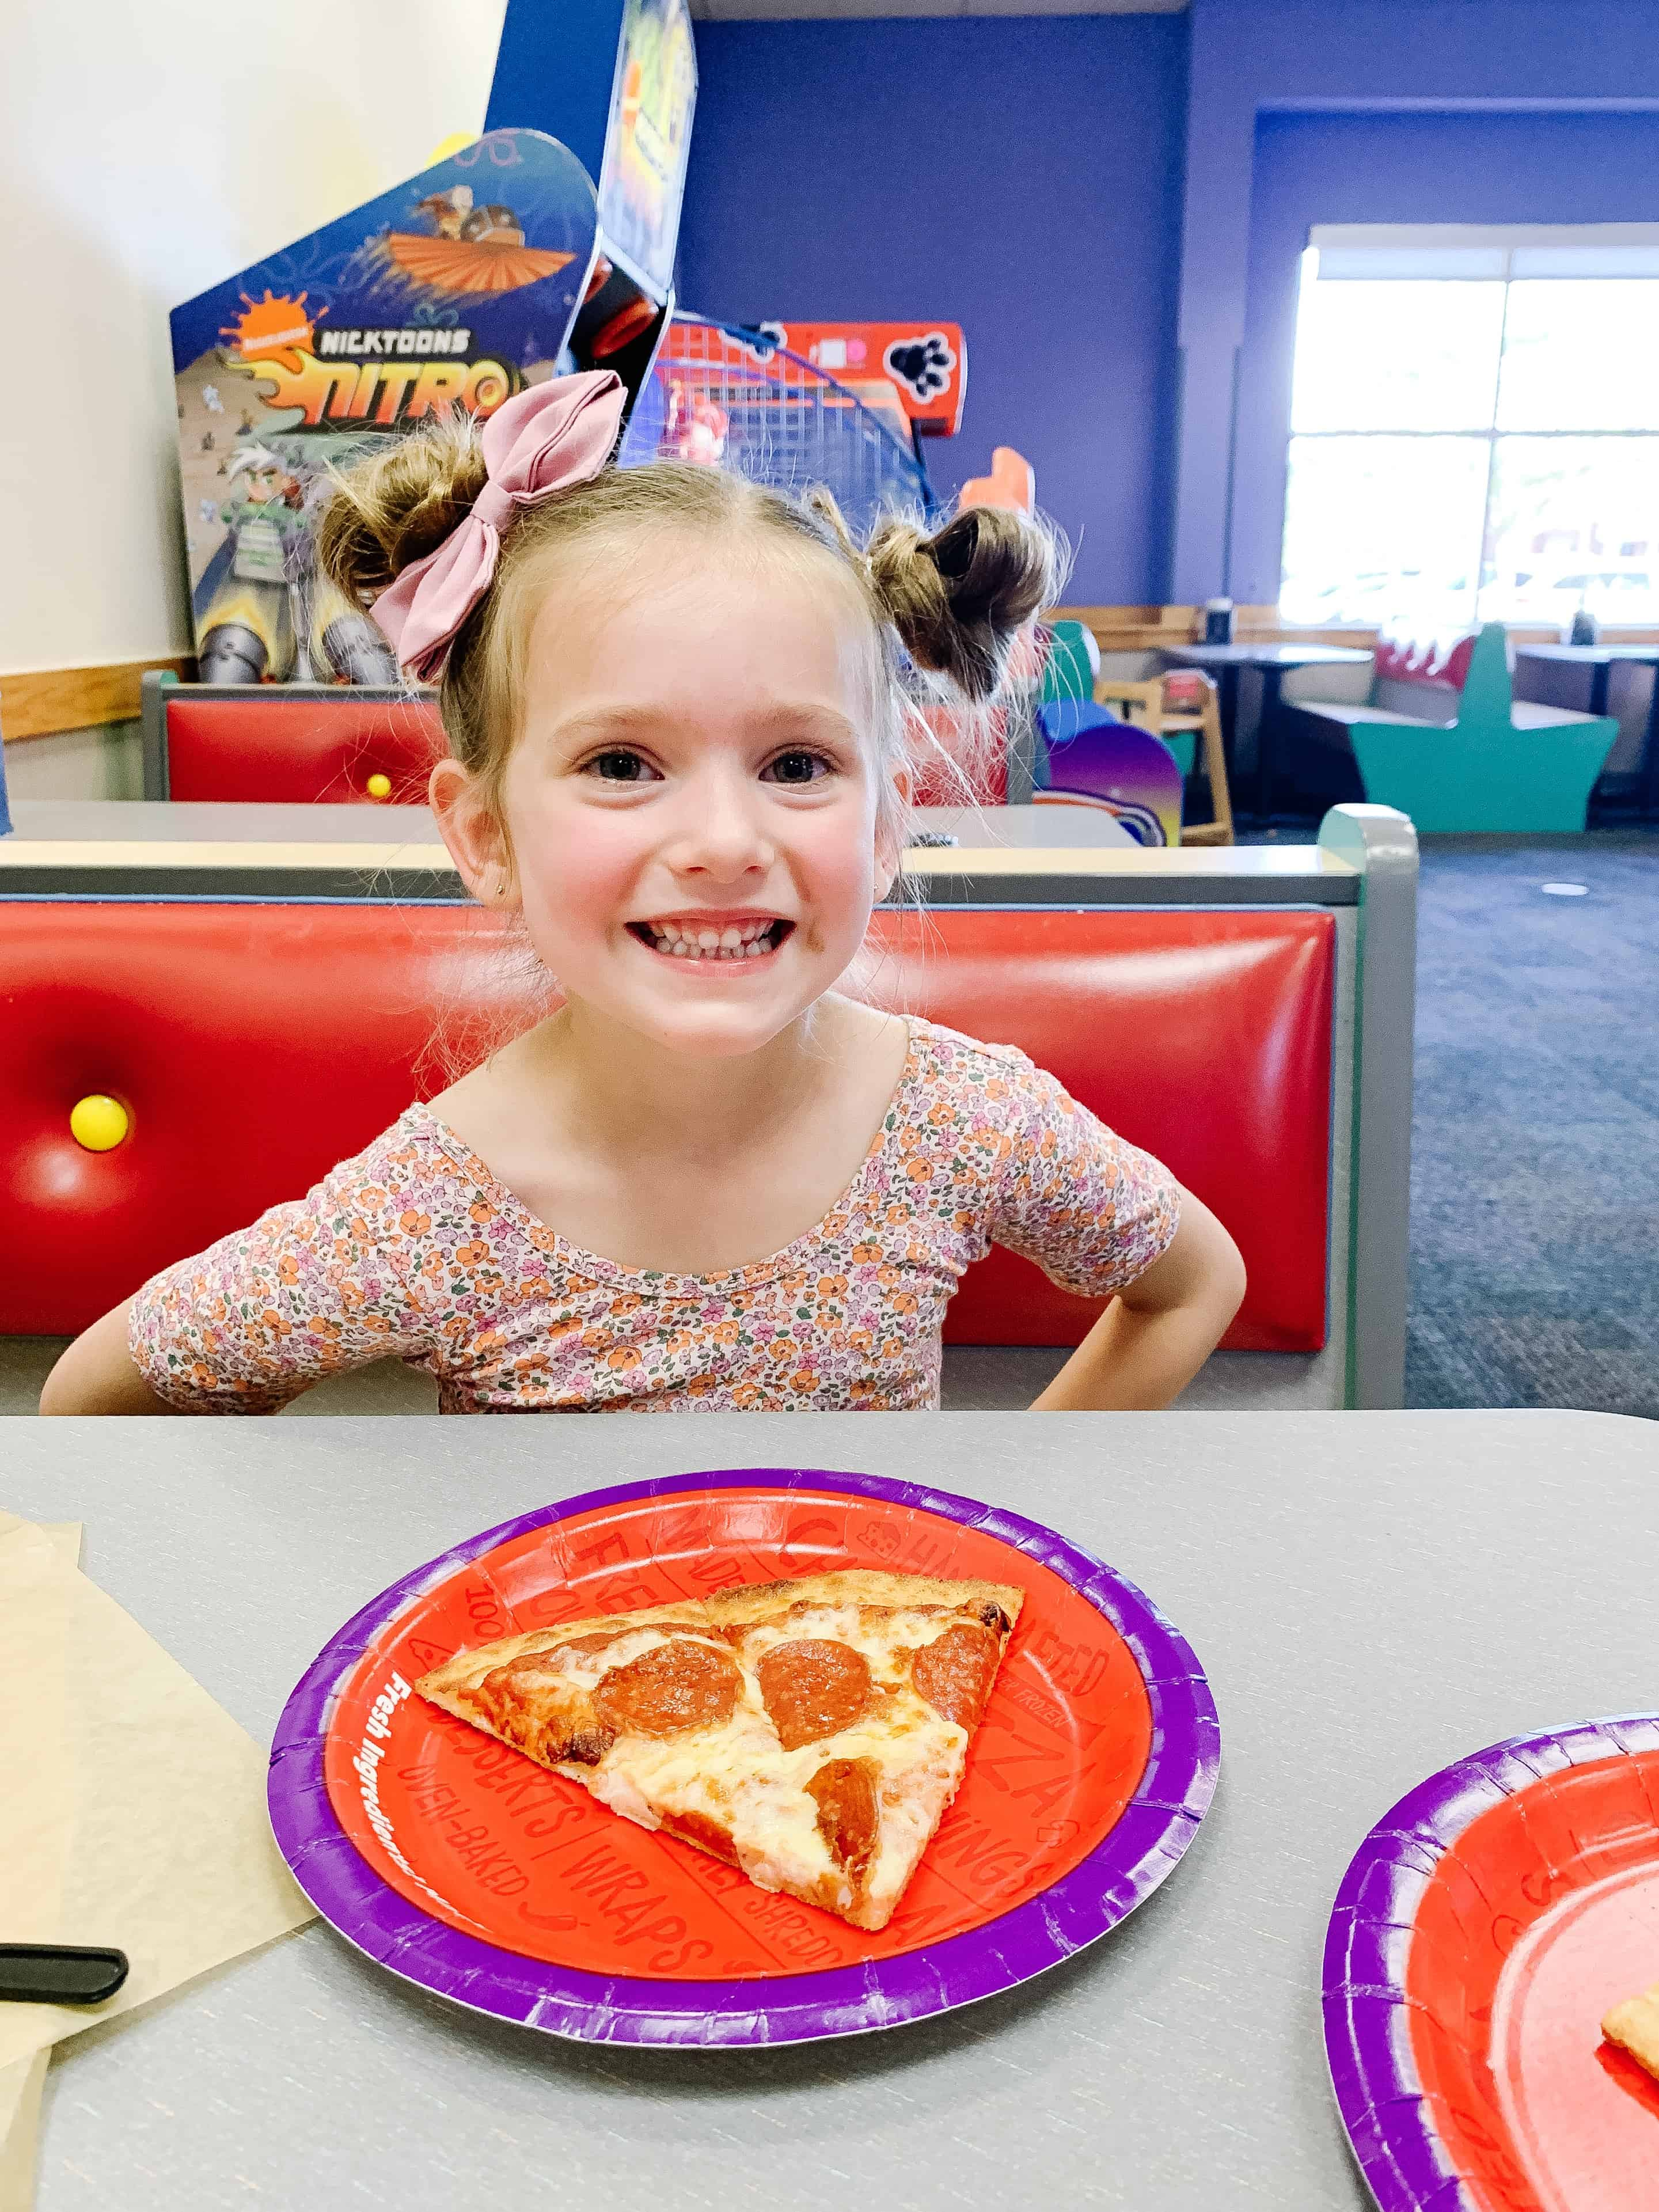 Chuck E. Cheese pizza and toddler girl